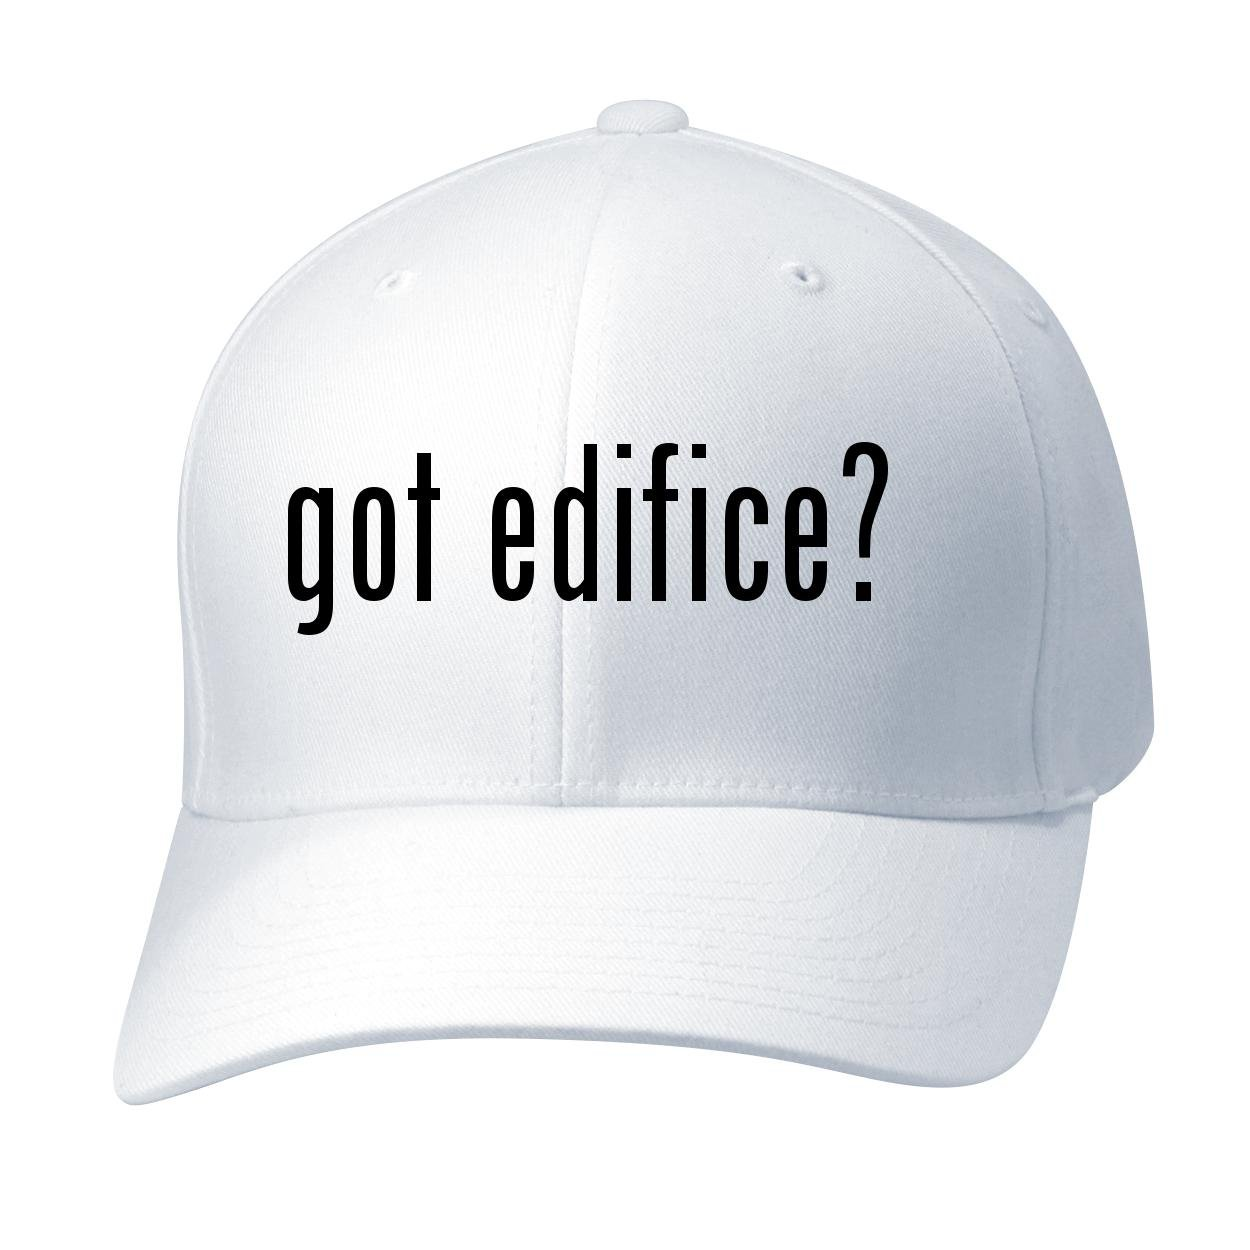 BH Cool Designs Got edifice? - Baseball Hat Cap Adult, White, Small/Medium by BH Cool Designs